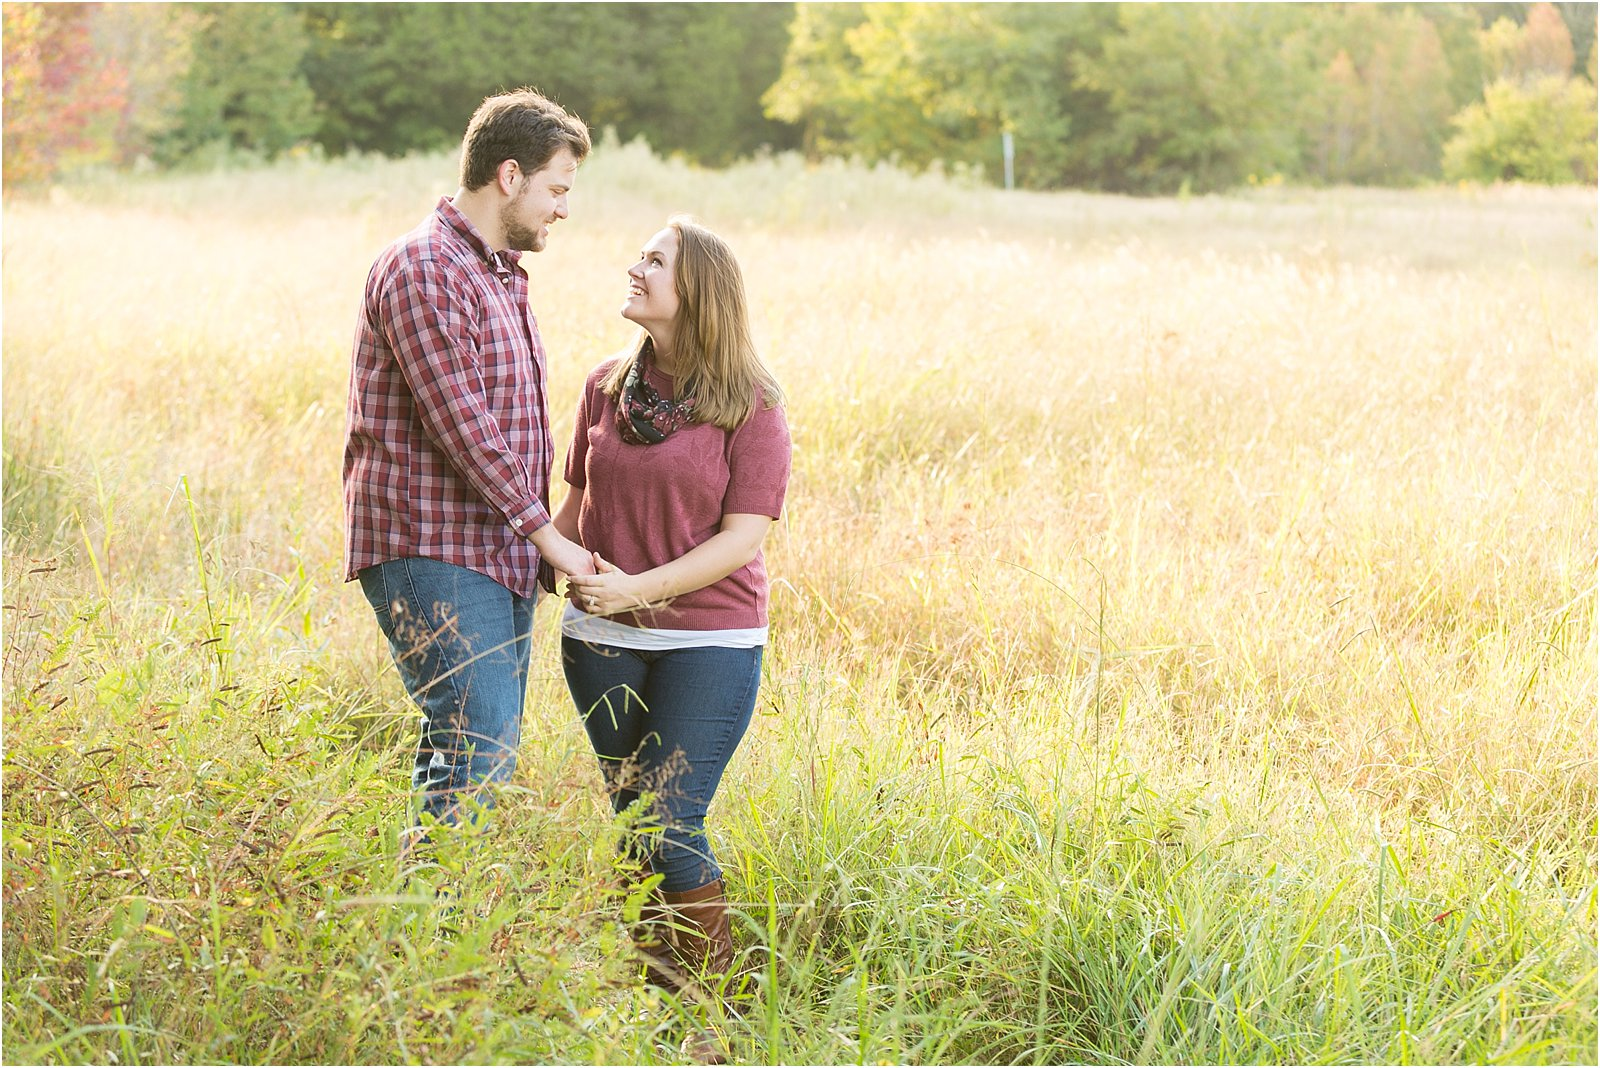 jessica_ryan_photography_pumpkin_patch_engagement_portraits_fall_october_engagements_virginia_beach_chesapeake_0303